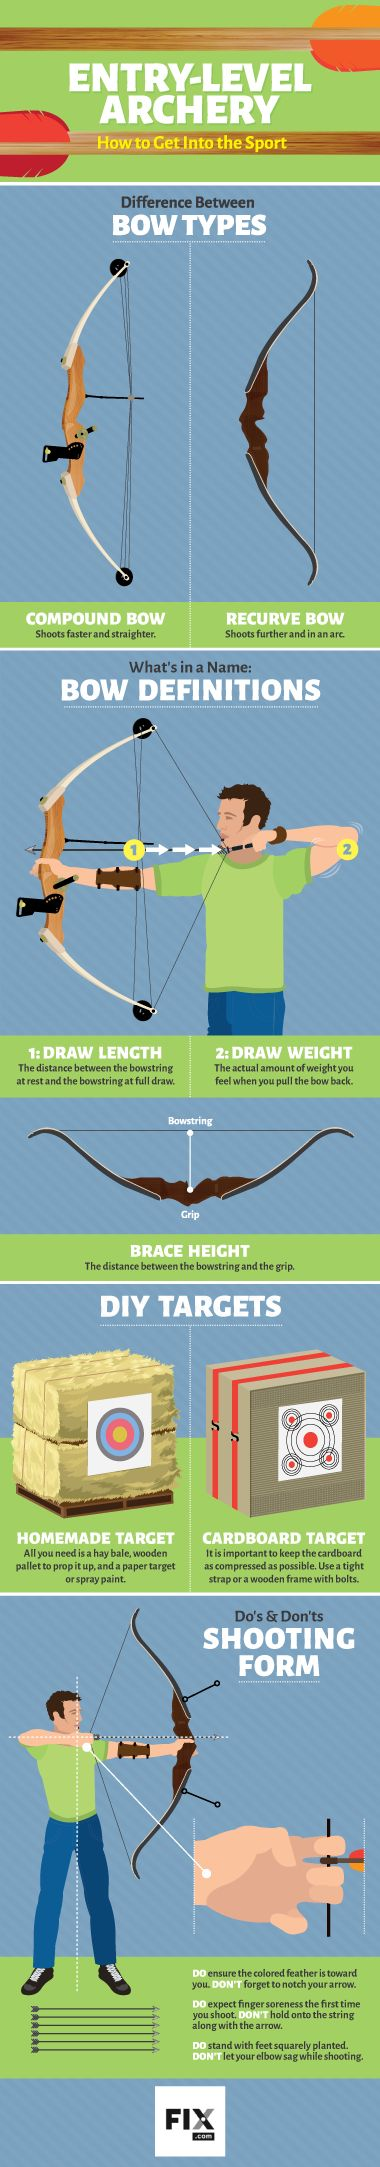 How to Get Started in Archery | Fix.com